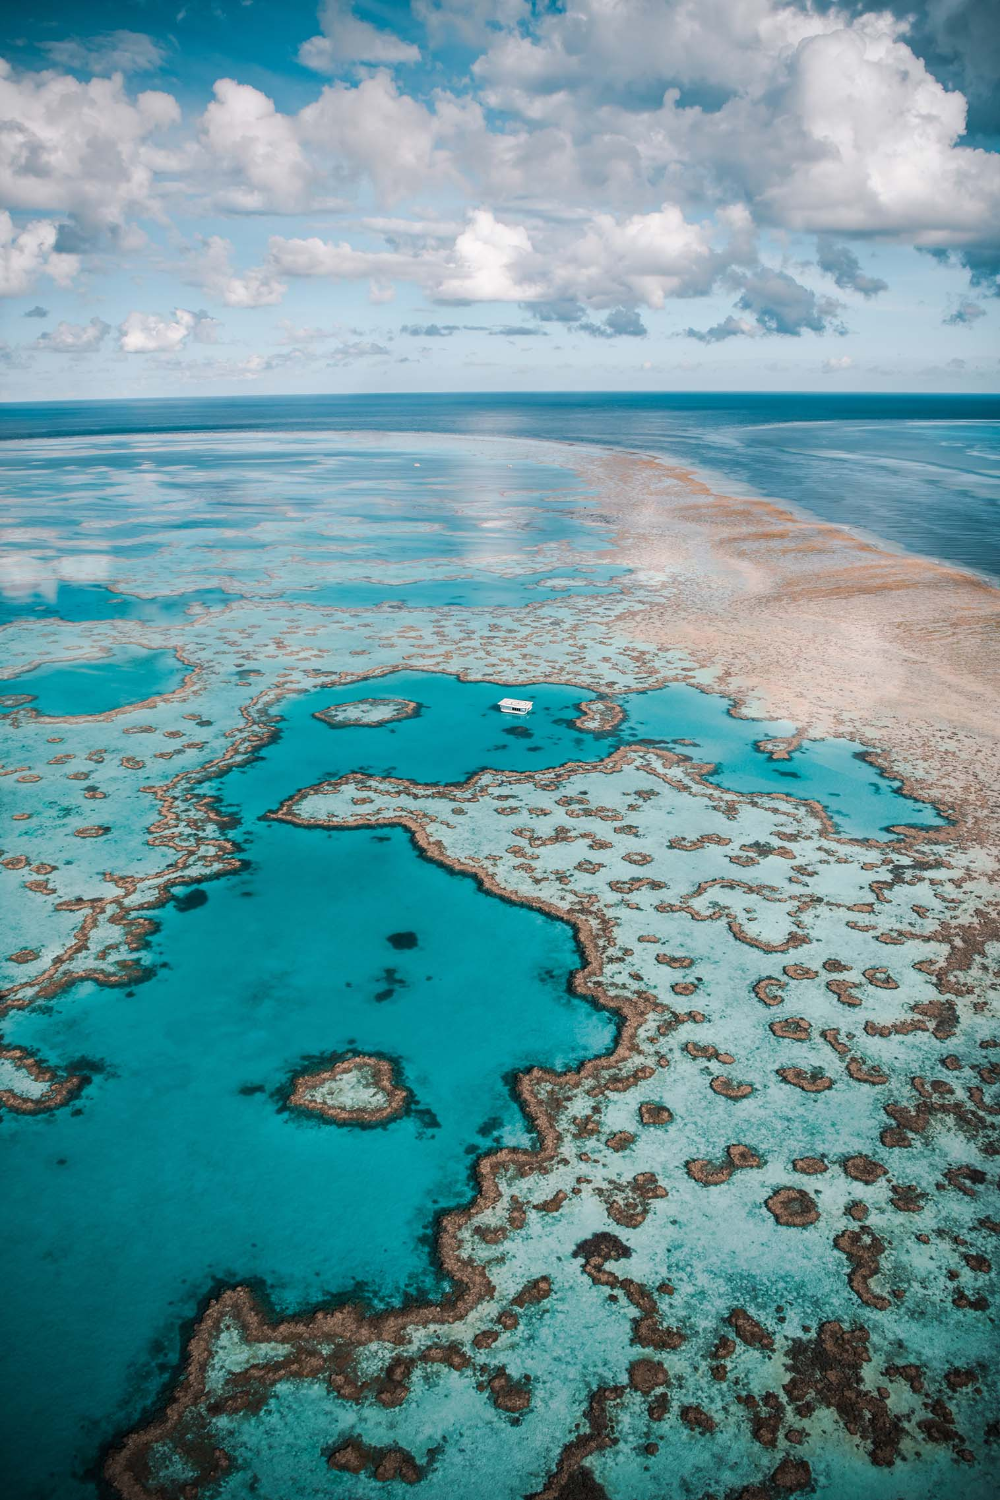 Bucket List Alert: Helicopter Over the Great Barrier Reef to Australia's Newly Opened Heart Island